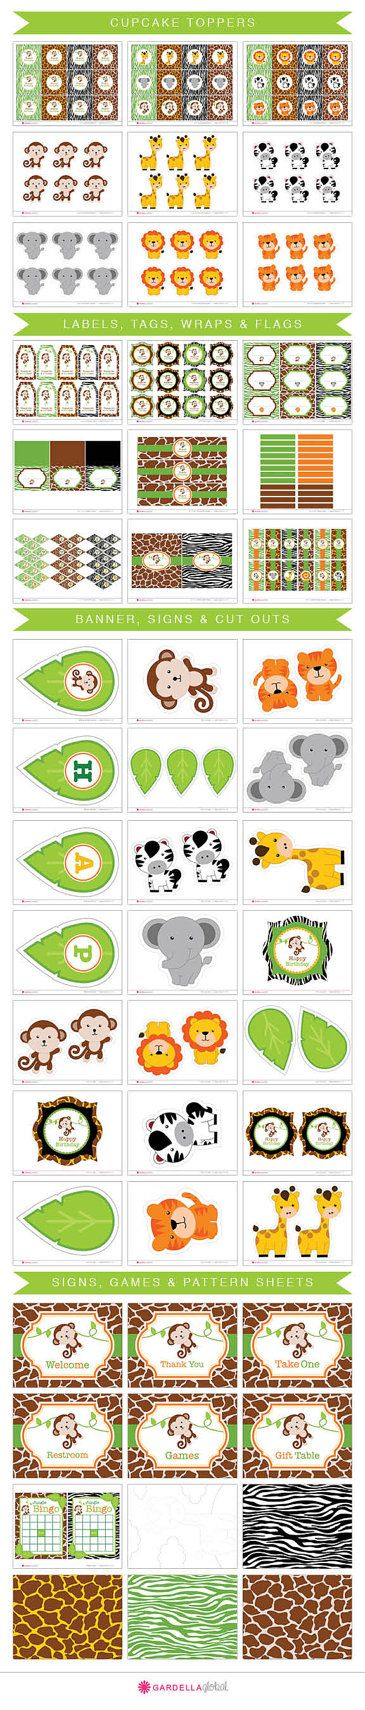 Jungle Party Printable's, Safari, Monkey, Animals, Zoo, Wild, Invitation, Thank you Card, Birthday Banner, Games, Labels, Water Bottle Wraps, Candy Wraps, Centerpieces, Favor Tags